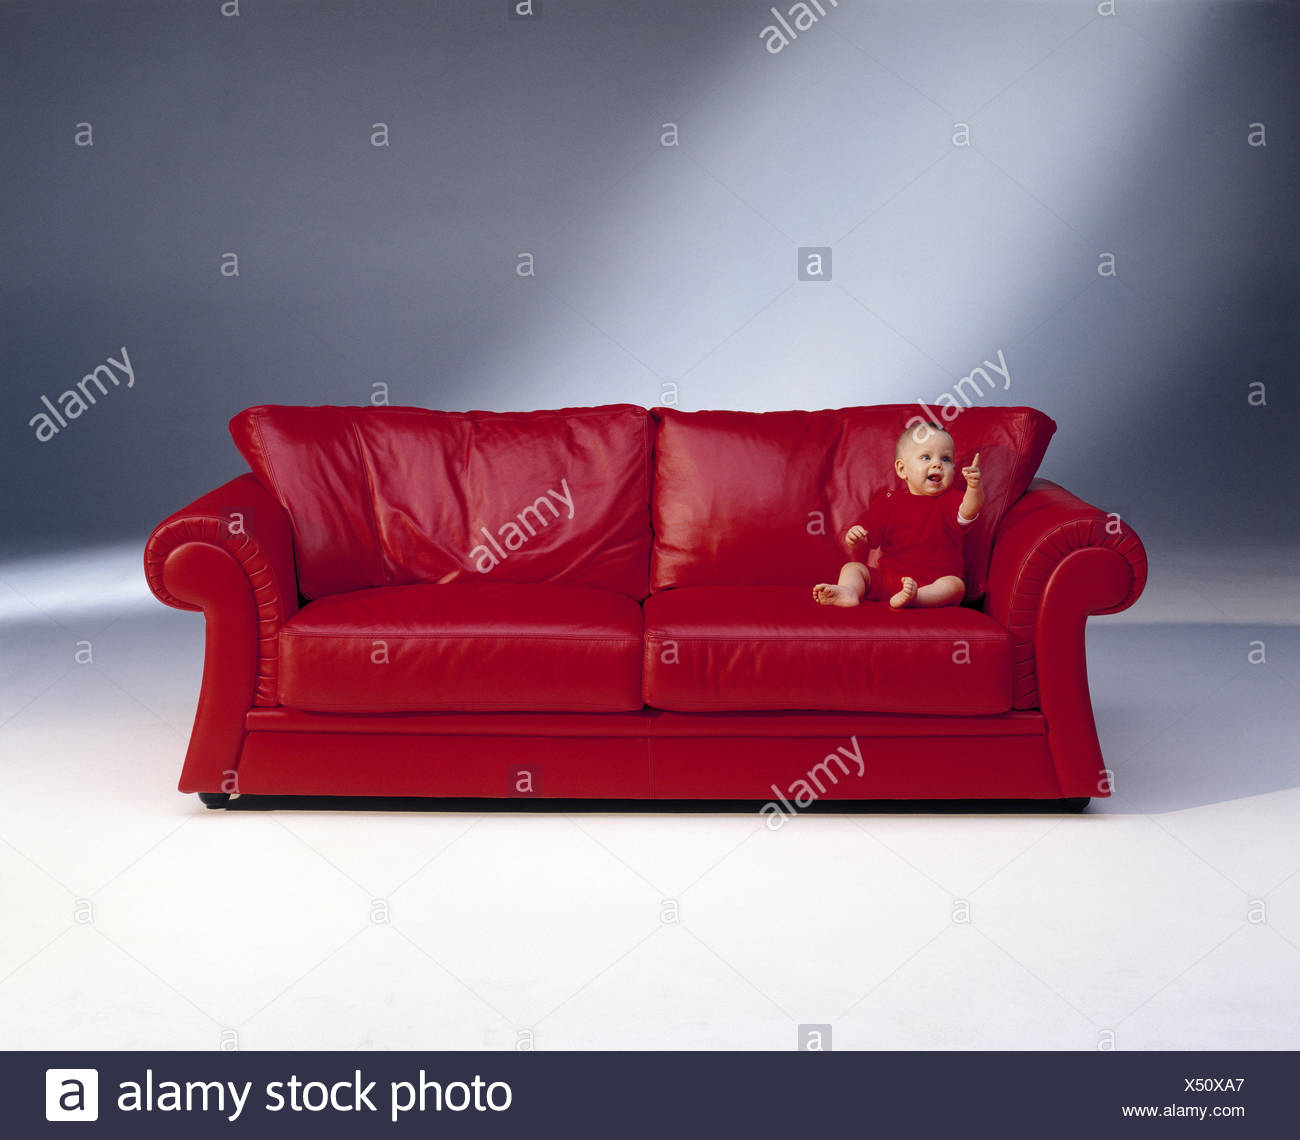 Leather sofa, infant, clothes, red, sofa, rest piece furniture ...